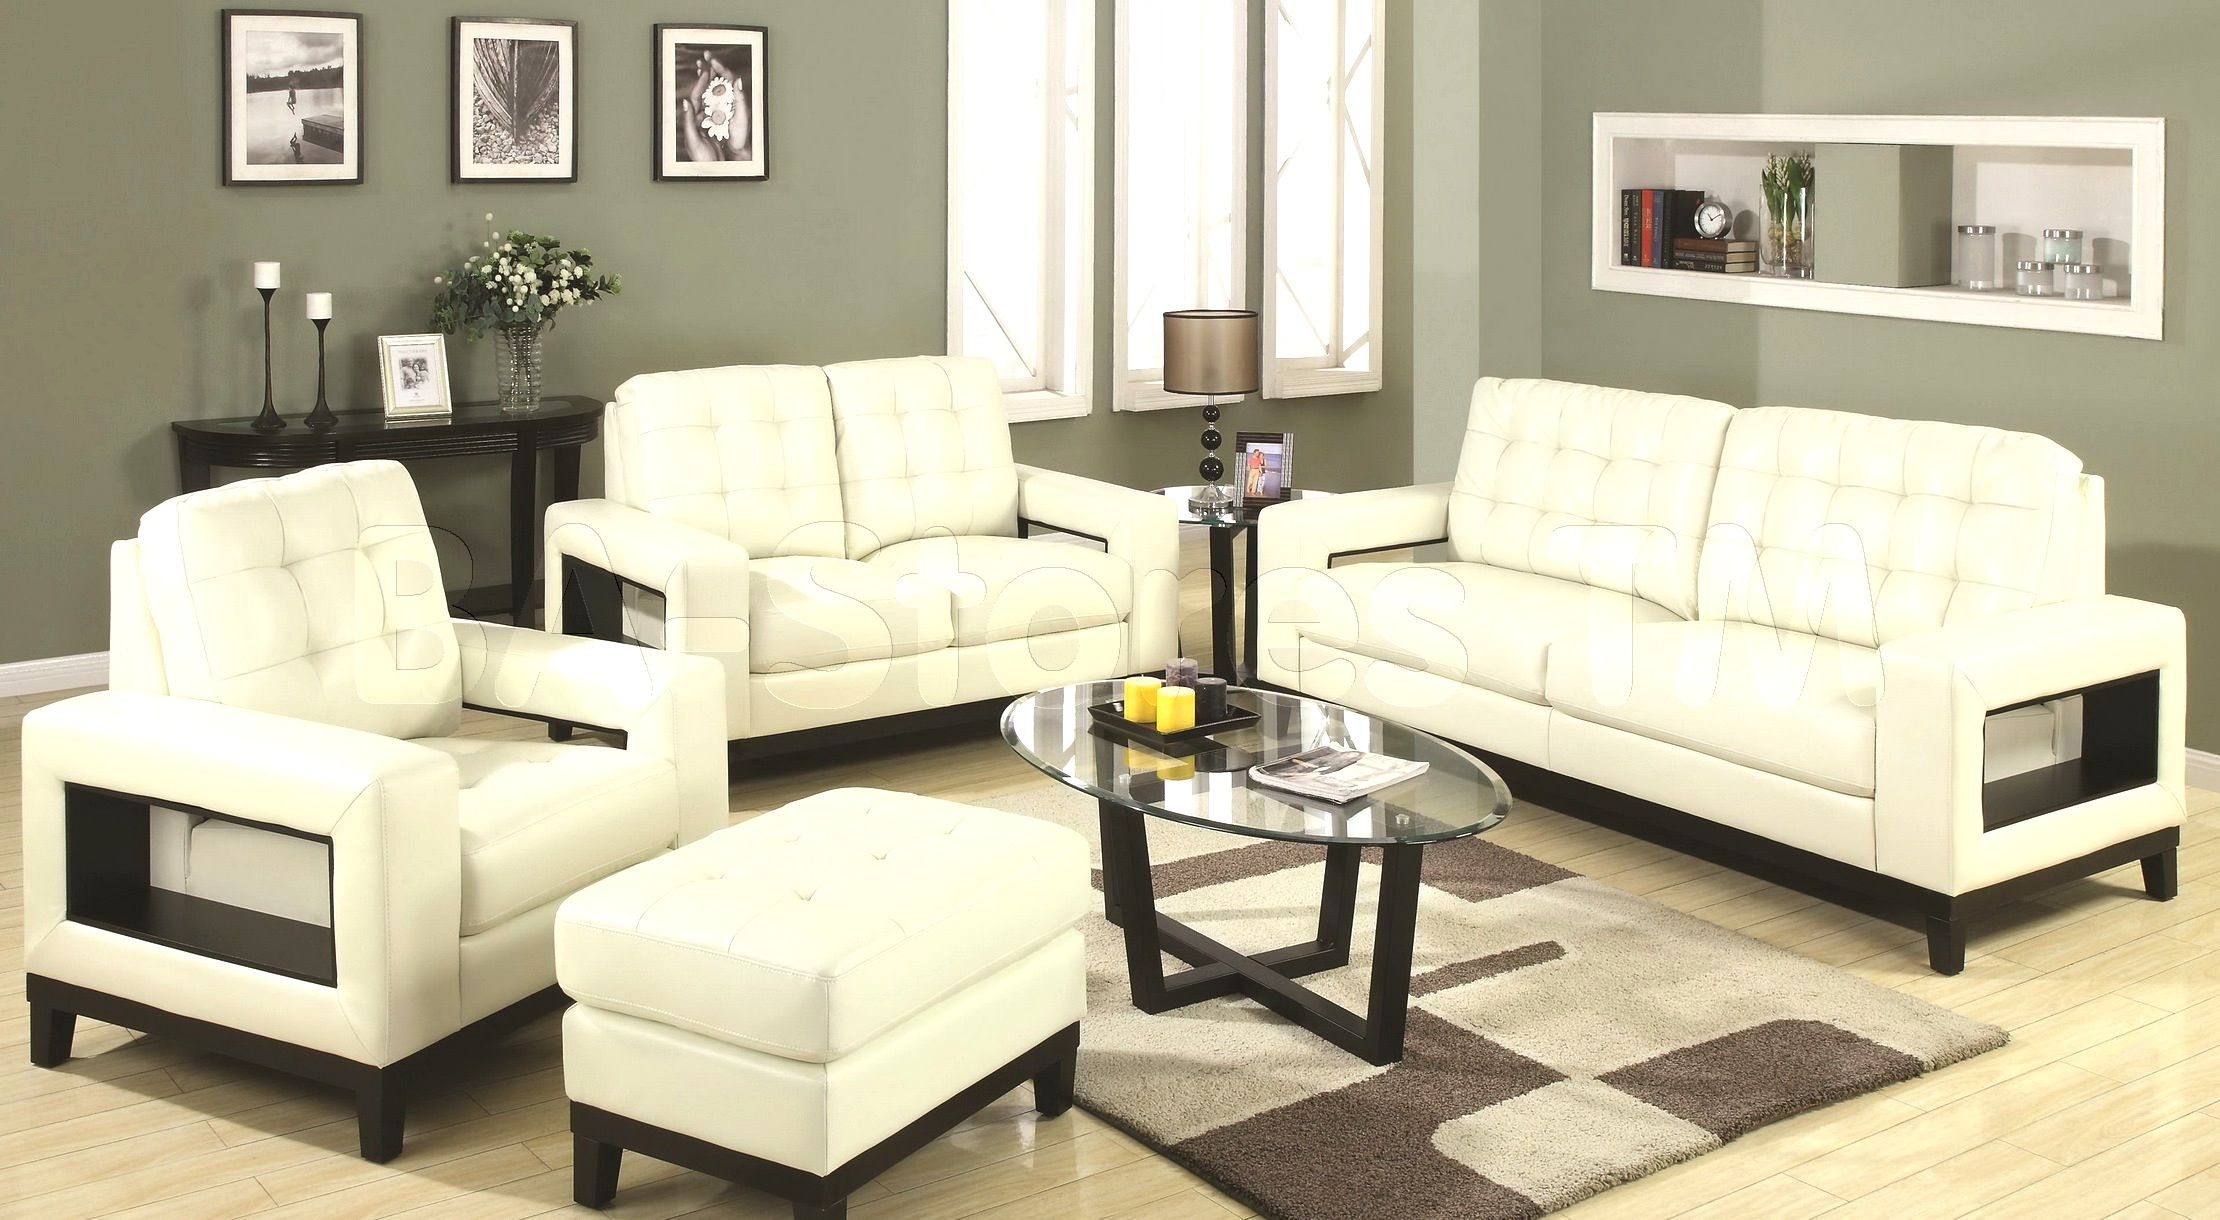 stylish serta sofa and loveseat design-Contemporary Serta sofa and Loveseat Picture